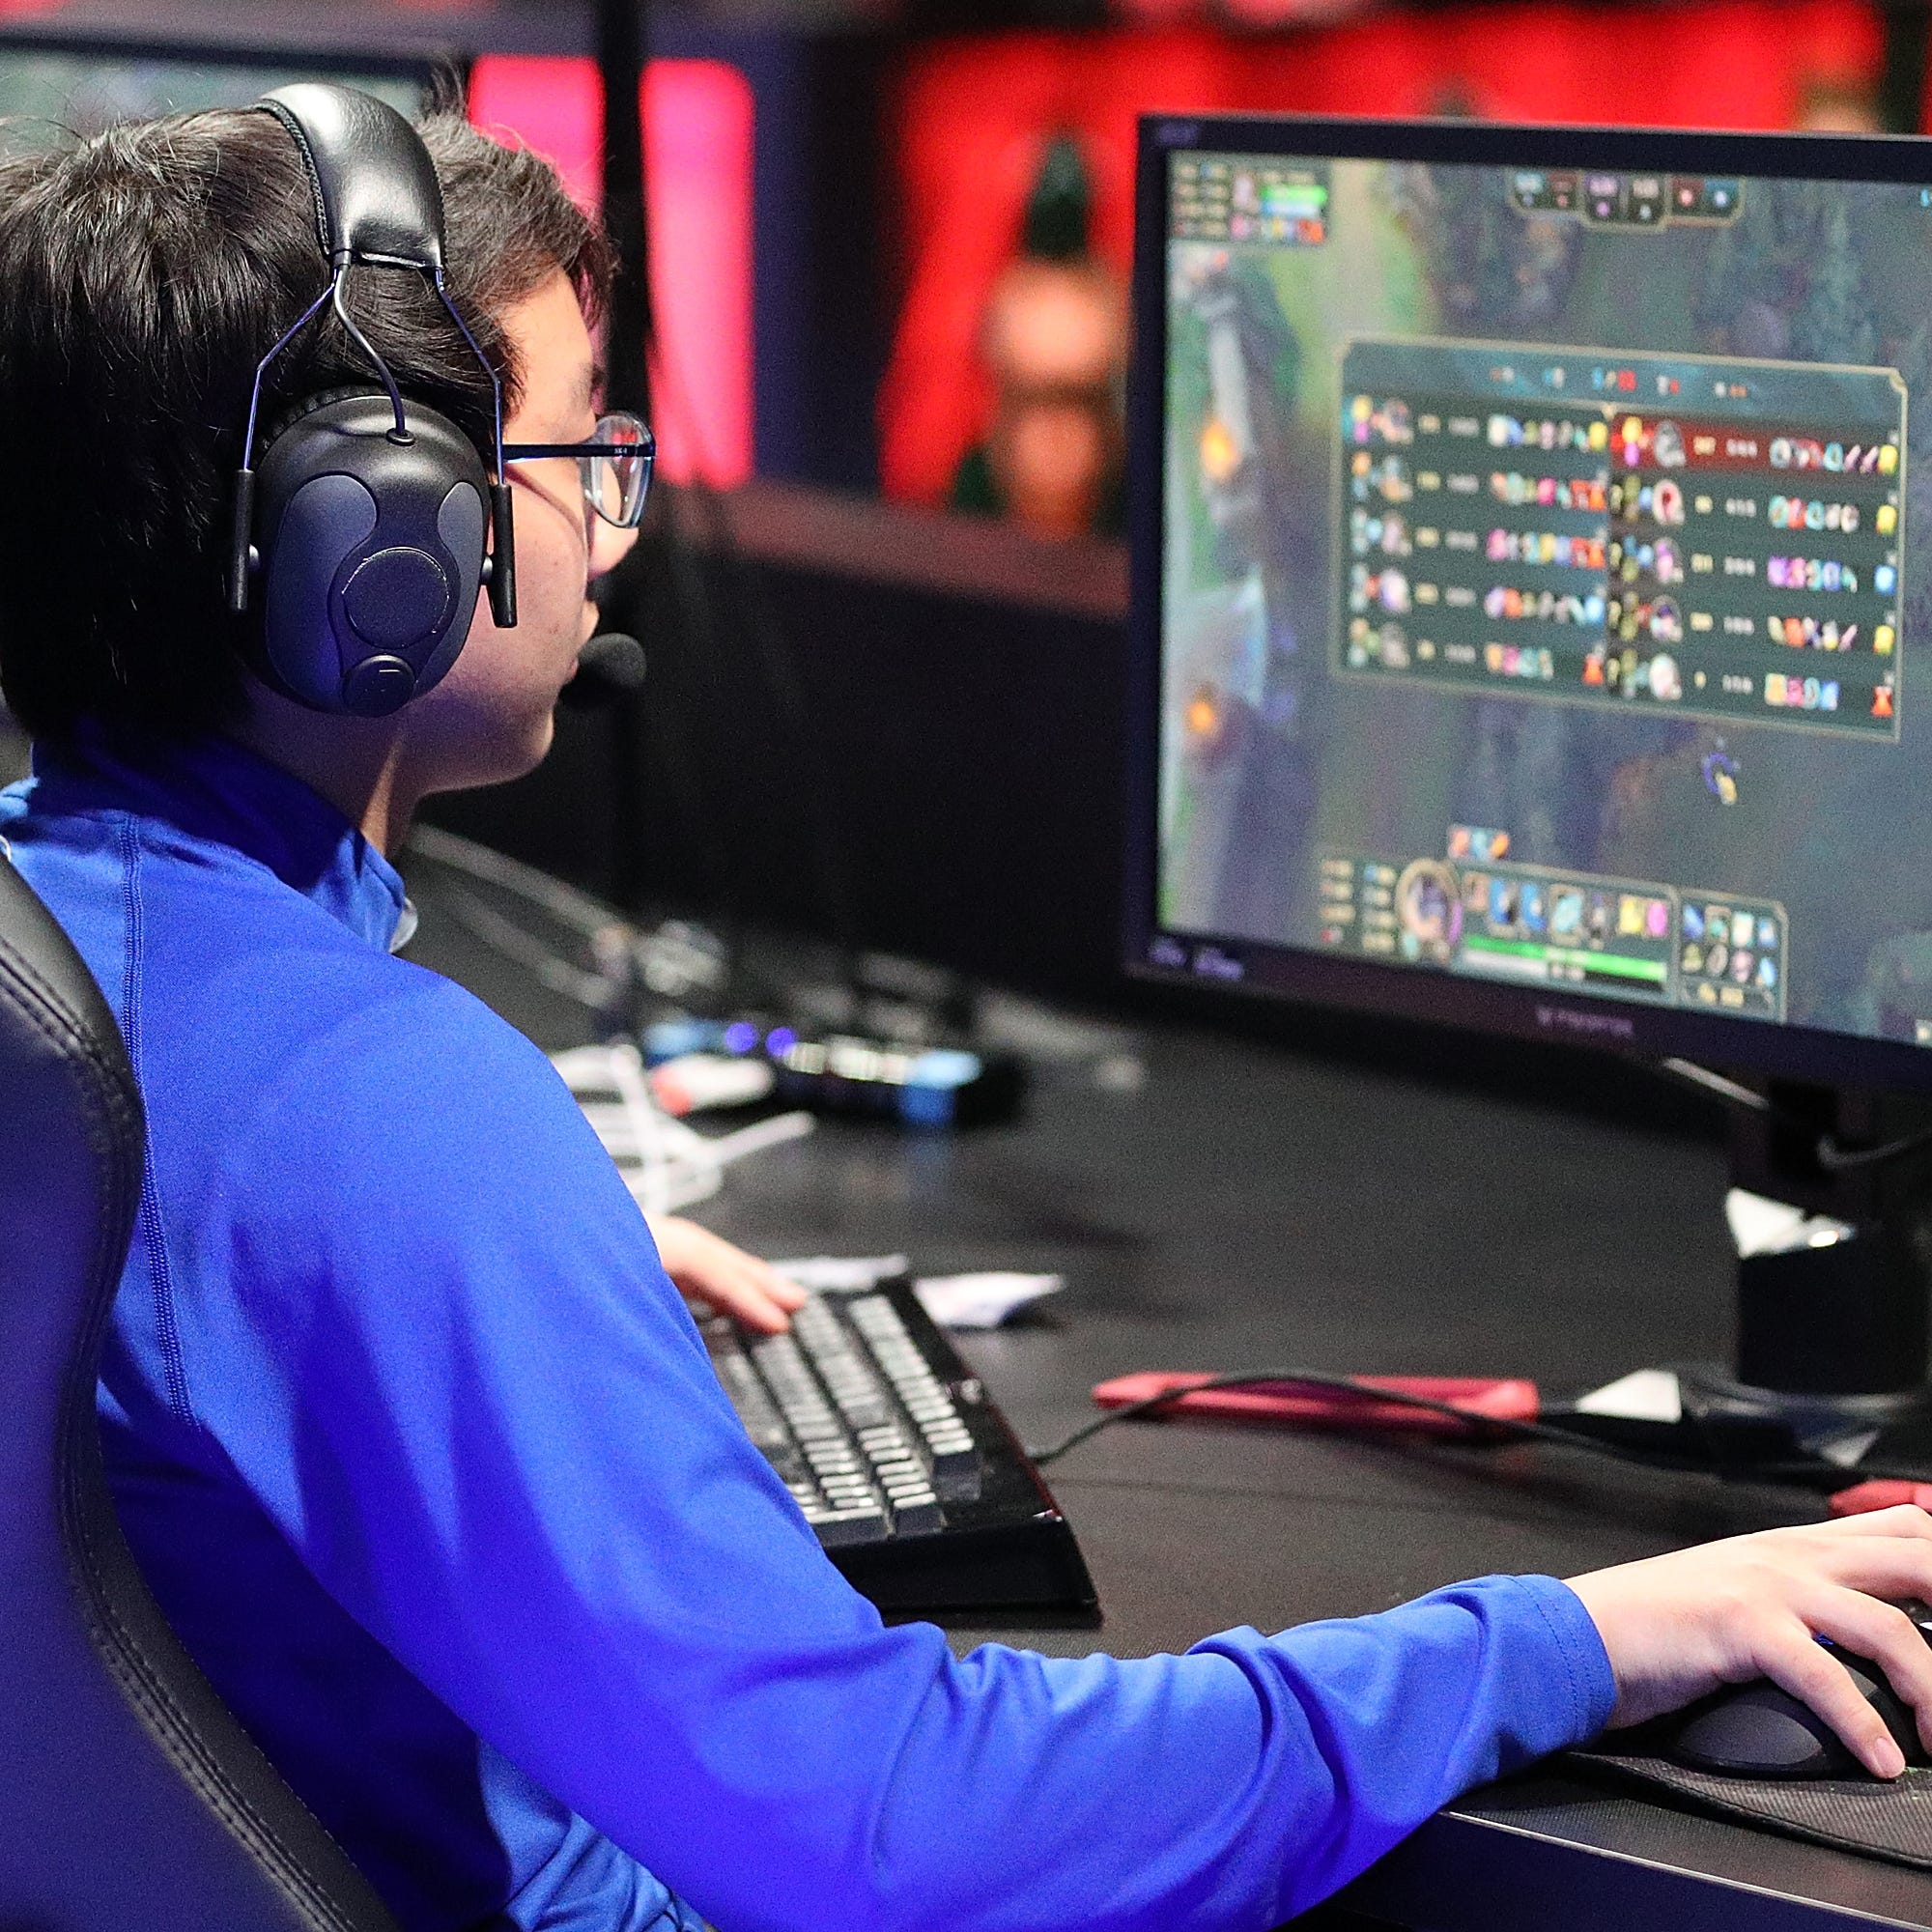 SANTA MONICA, CA - MAY 28:  Alvin Ngo (Gaow Gaiy) of the University of Toronto at the League of Legends College Championship match between Maryville University and the University of Toronto at the NA LCS Studio at Riot Games Arena on May 28, 2017 in Santa Monica, California.